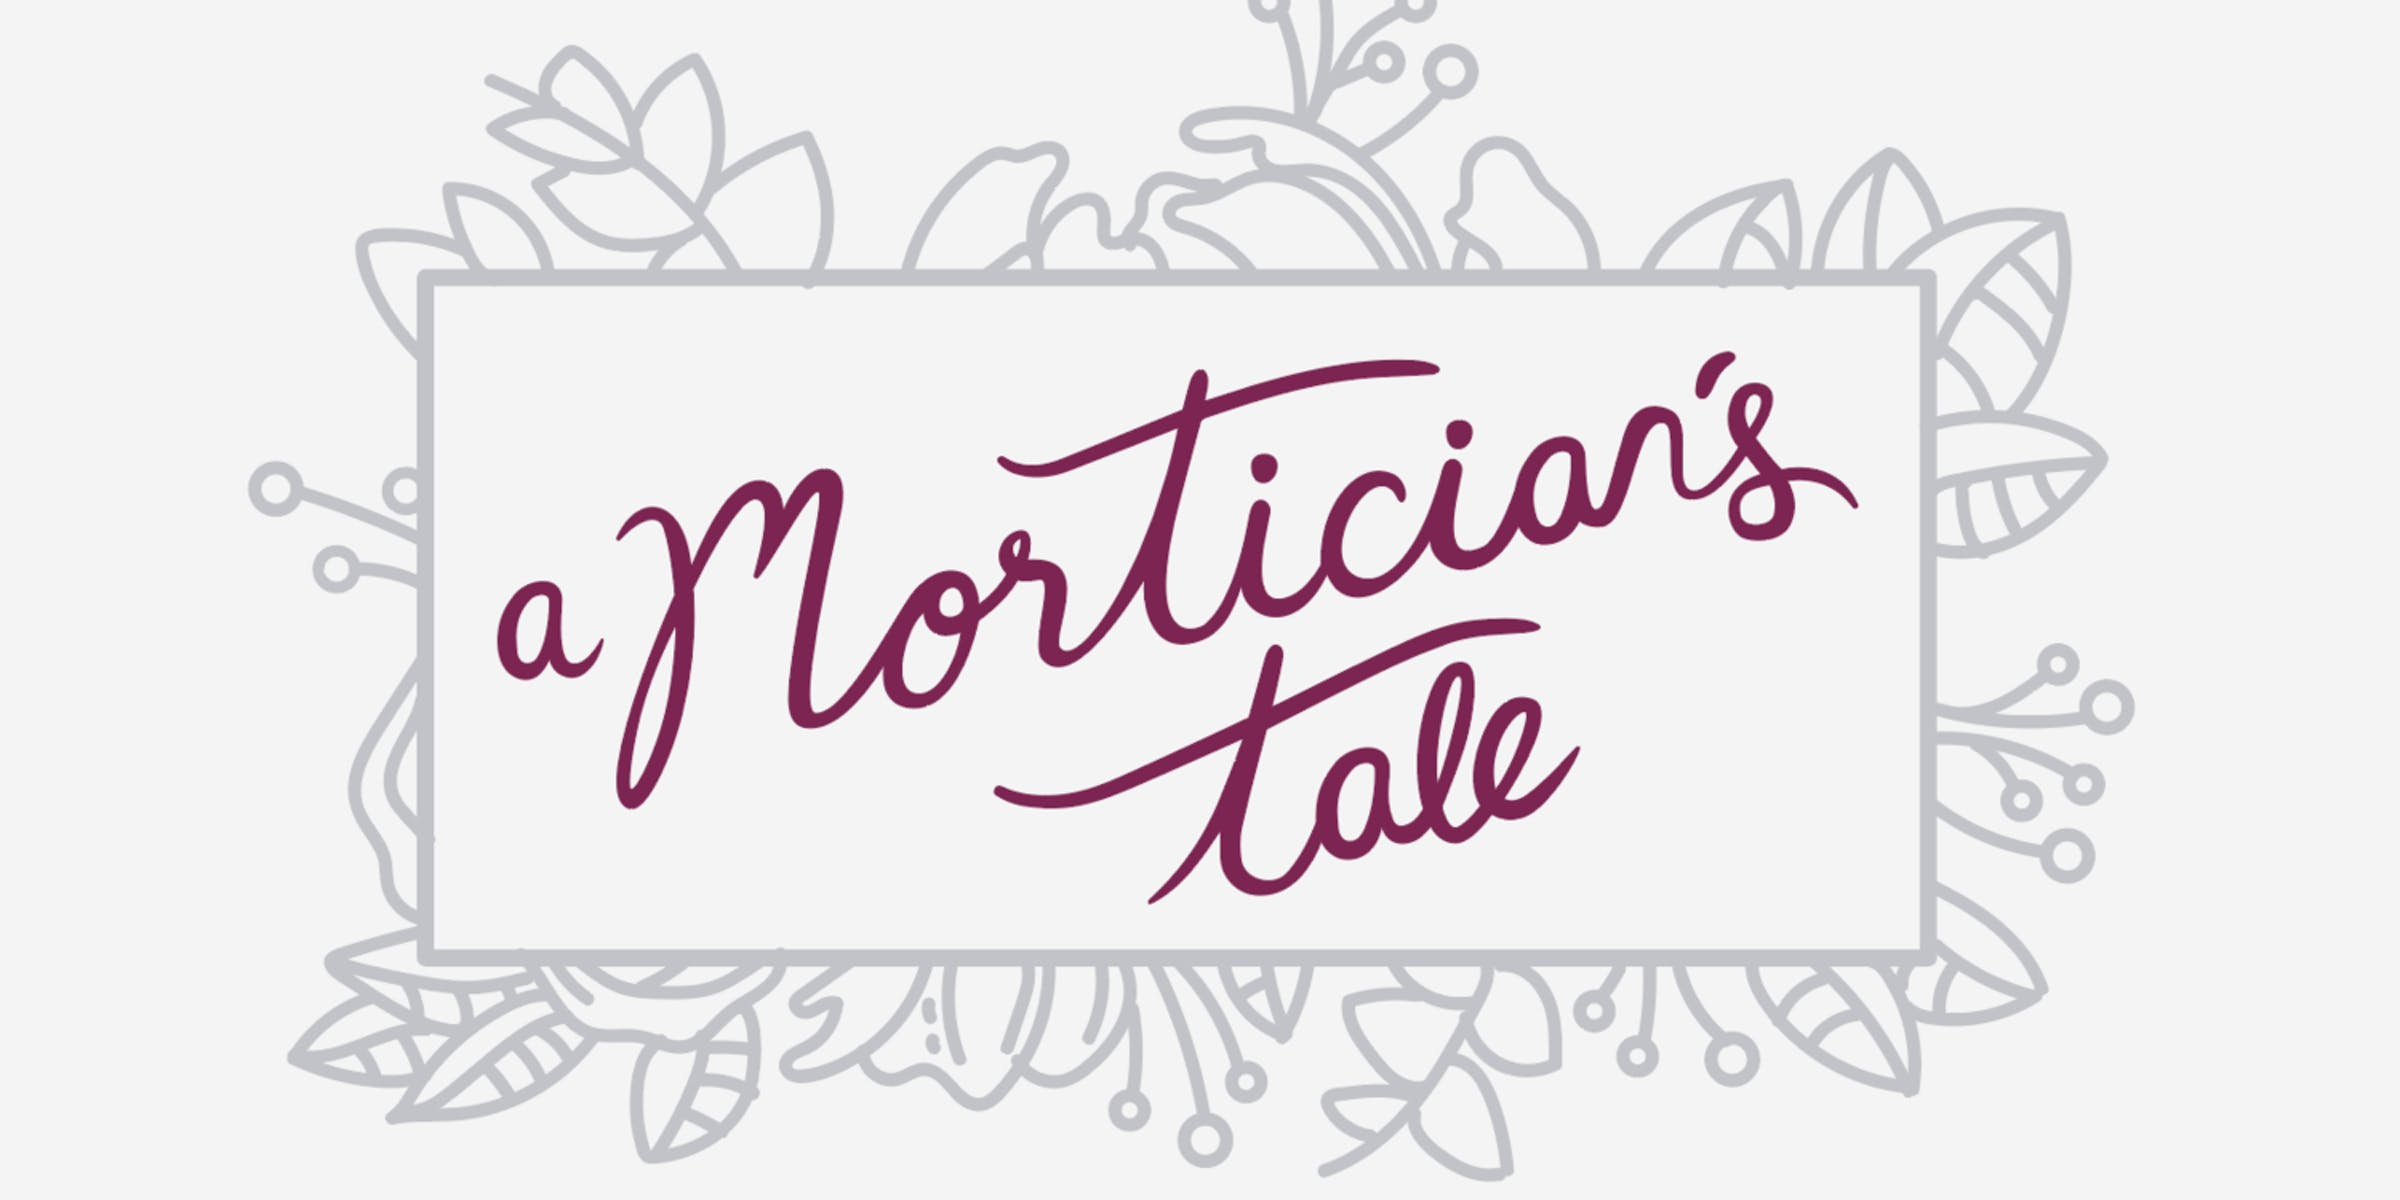 dating site for morticians